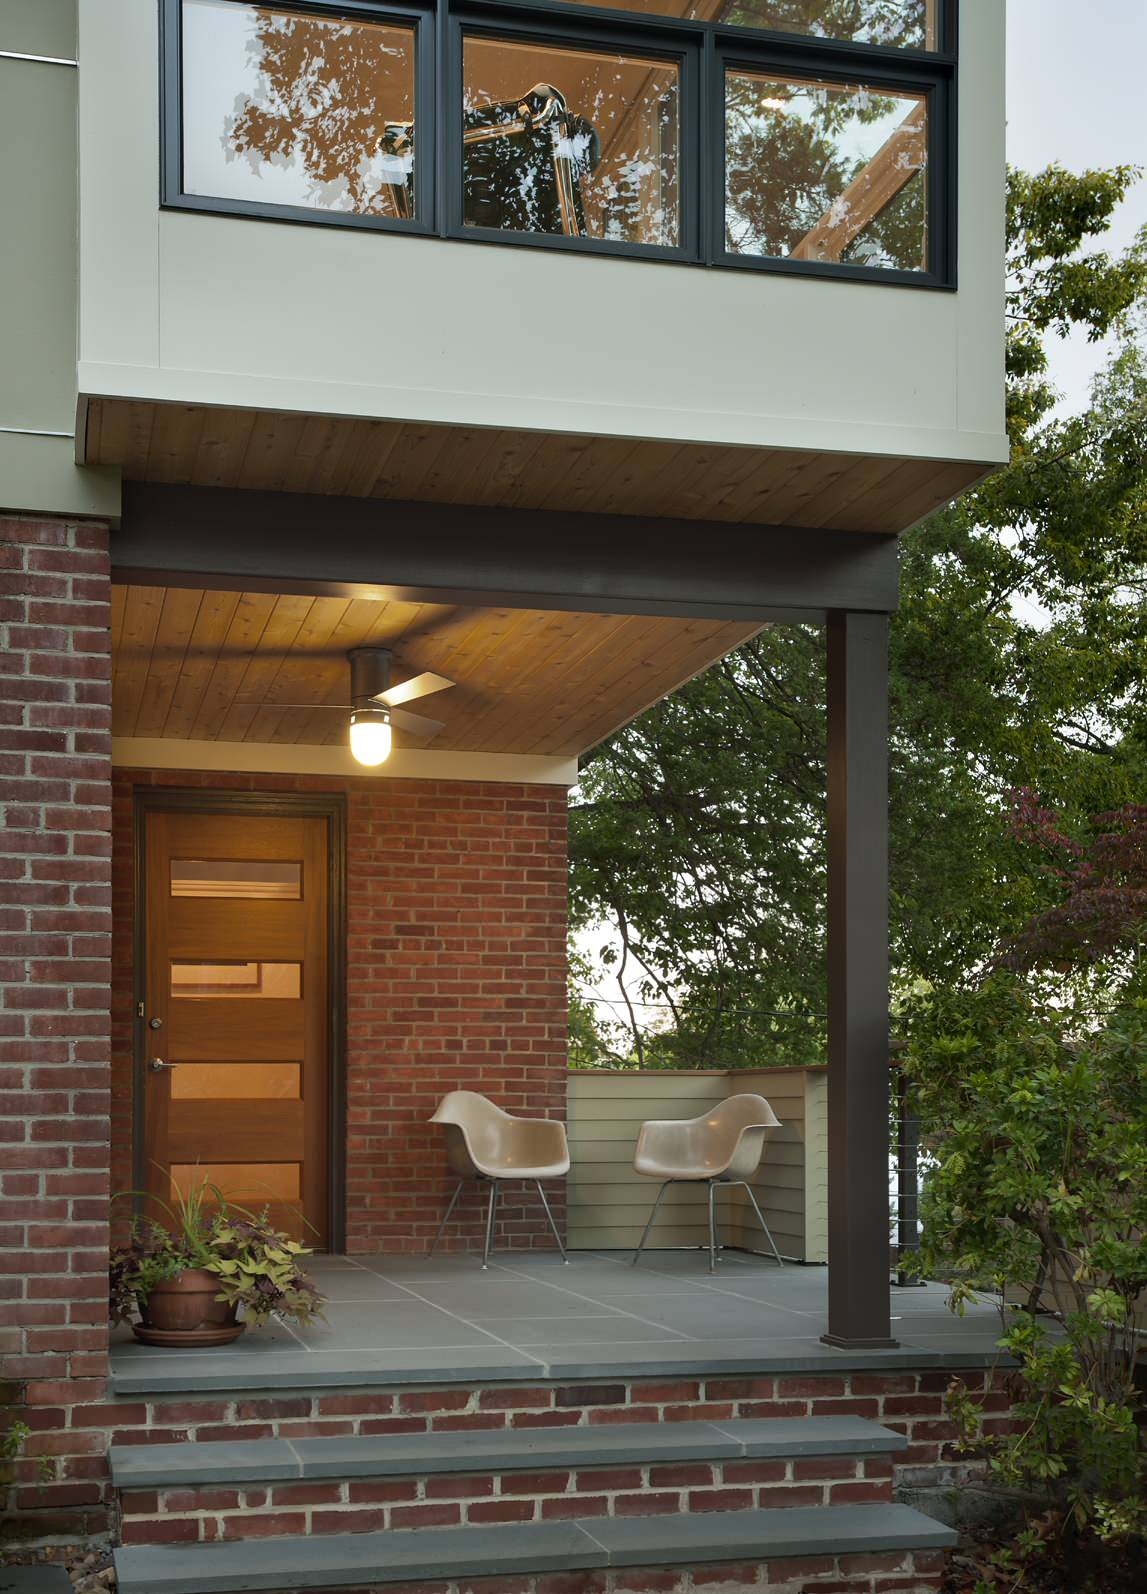 16 Enchanting Modern Entrance Designs That Boost The ... on Modern Entrance Design  id=57252